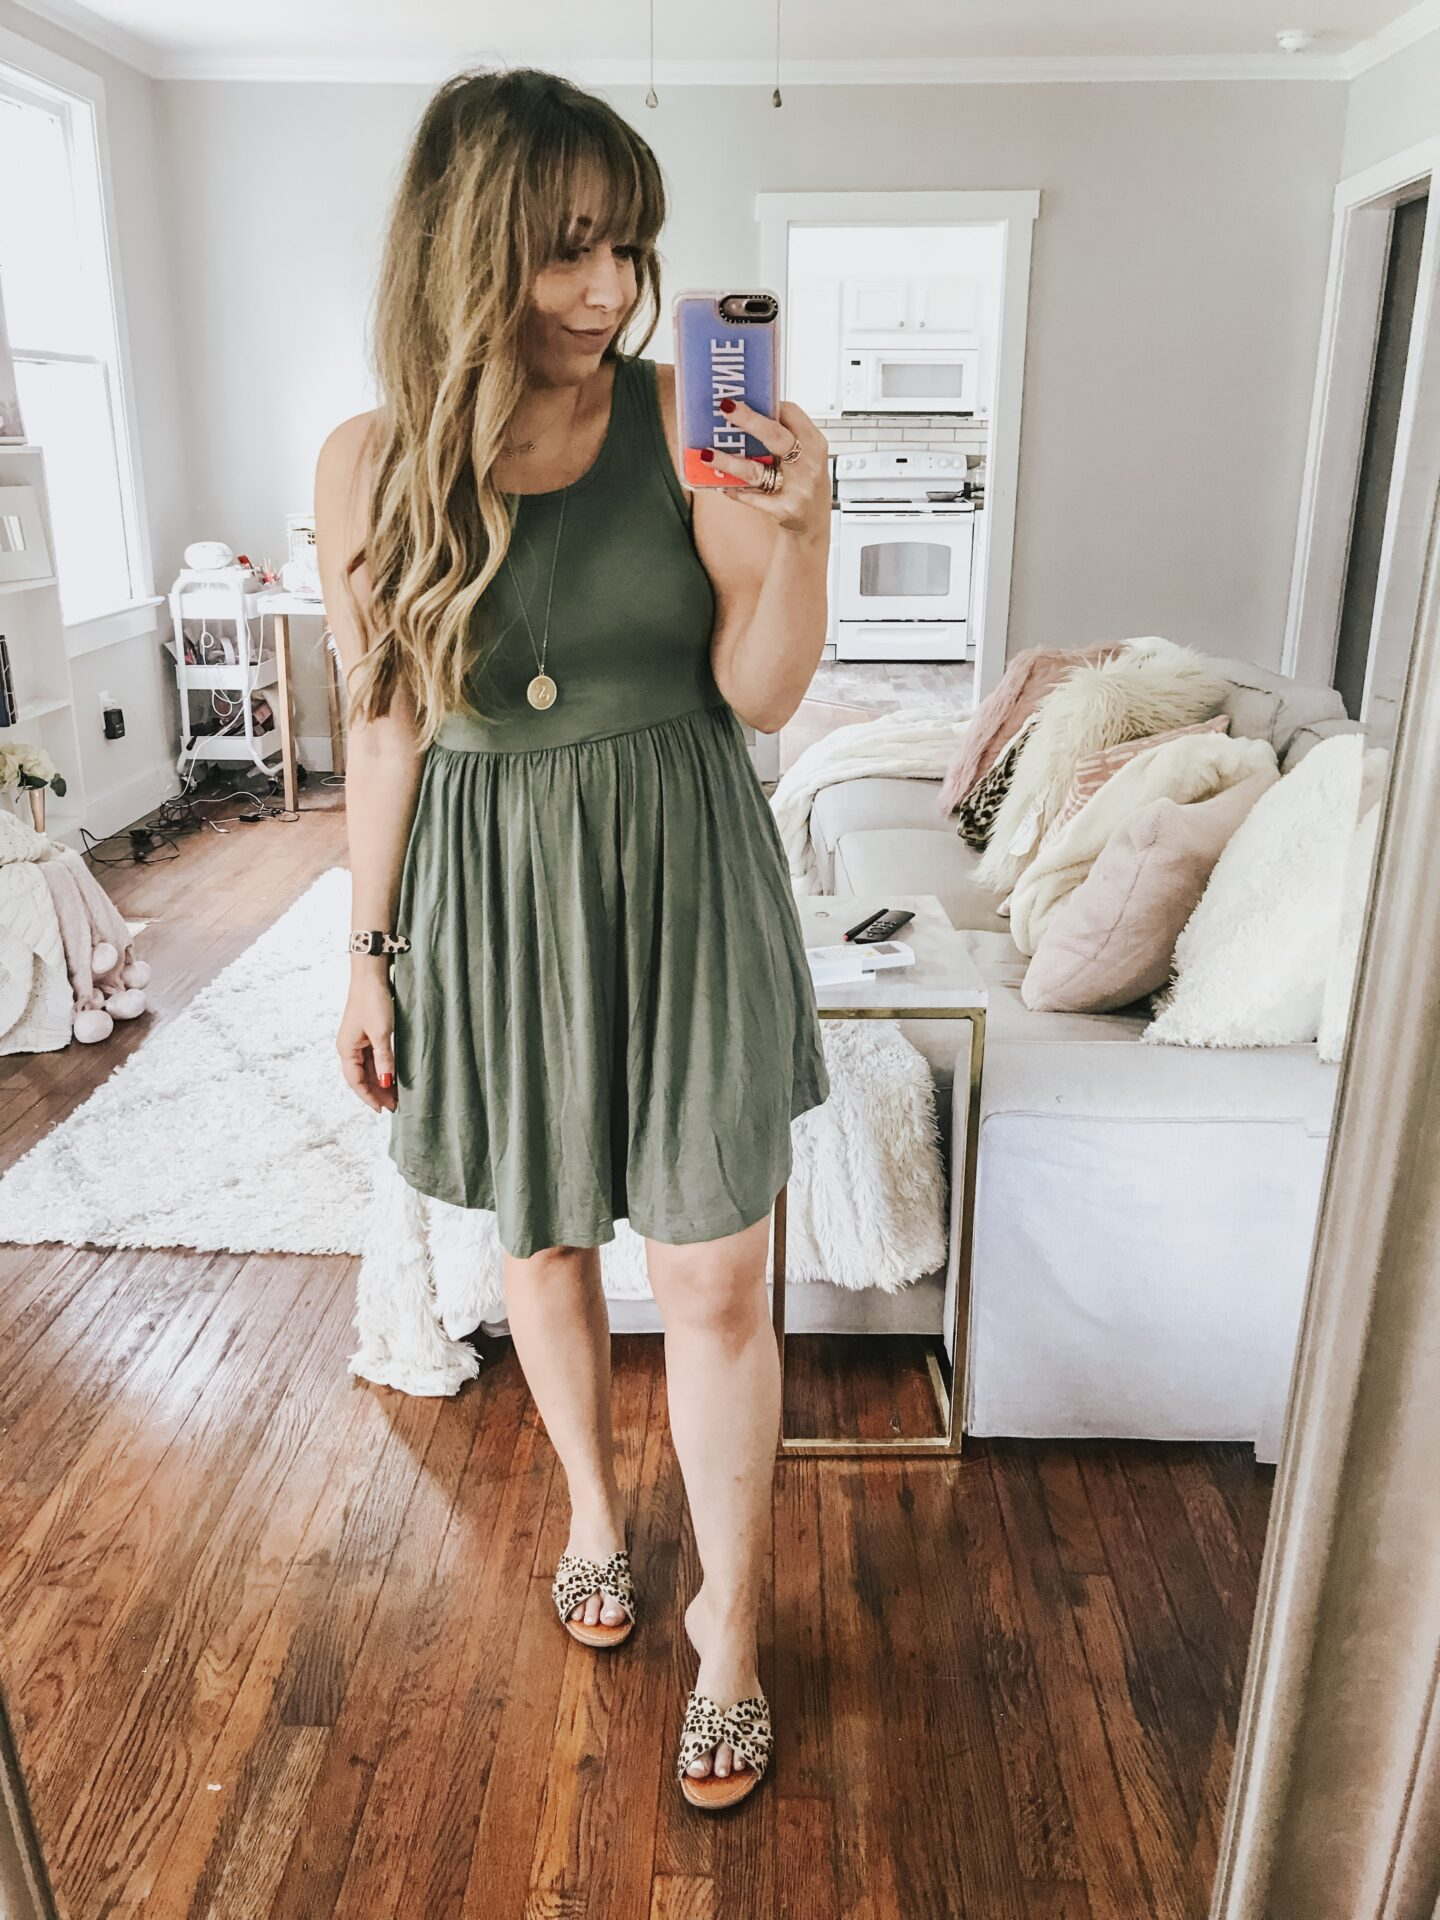 Cute Amazon tank dress